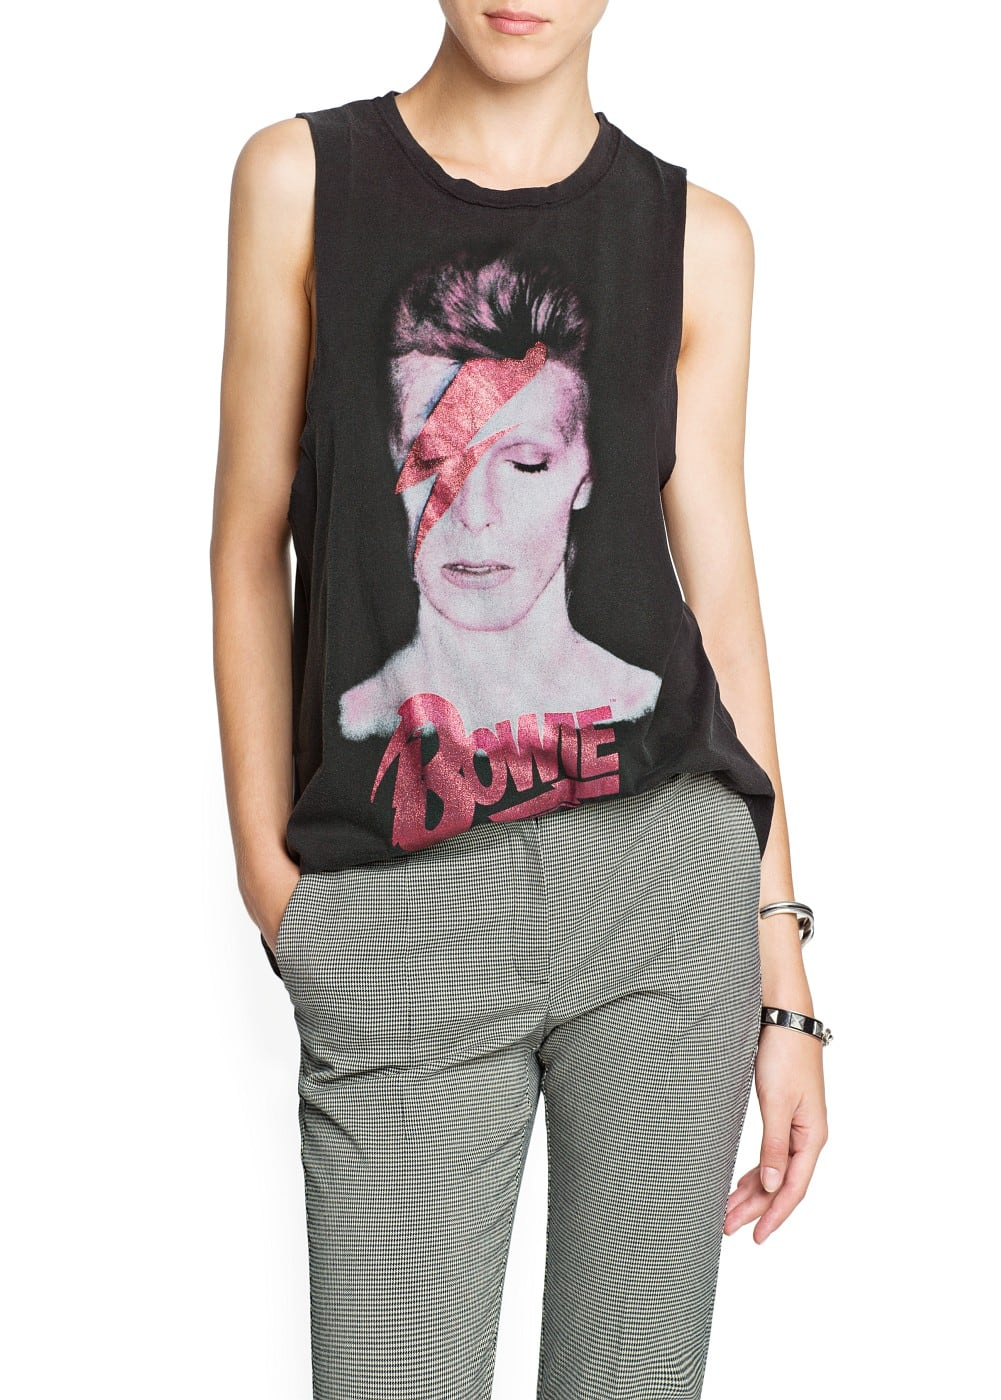 """BOWIE"" cotton t-shirt"